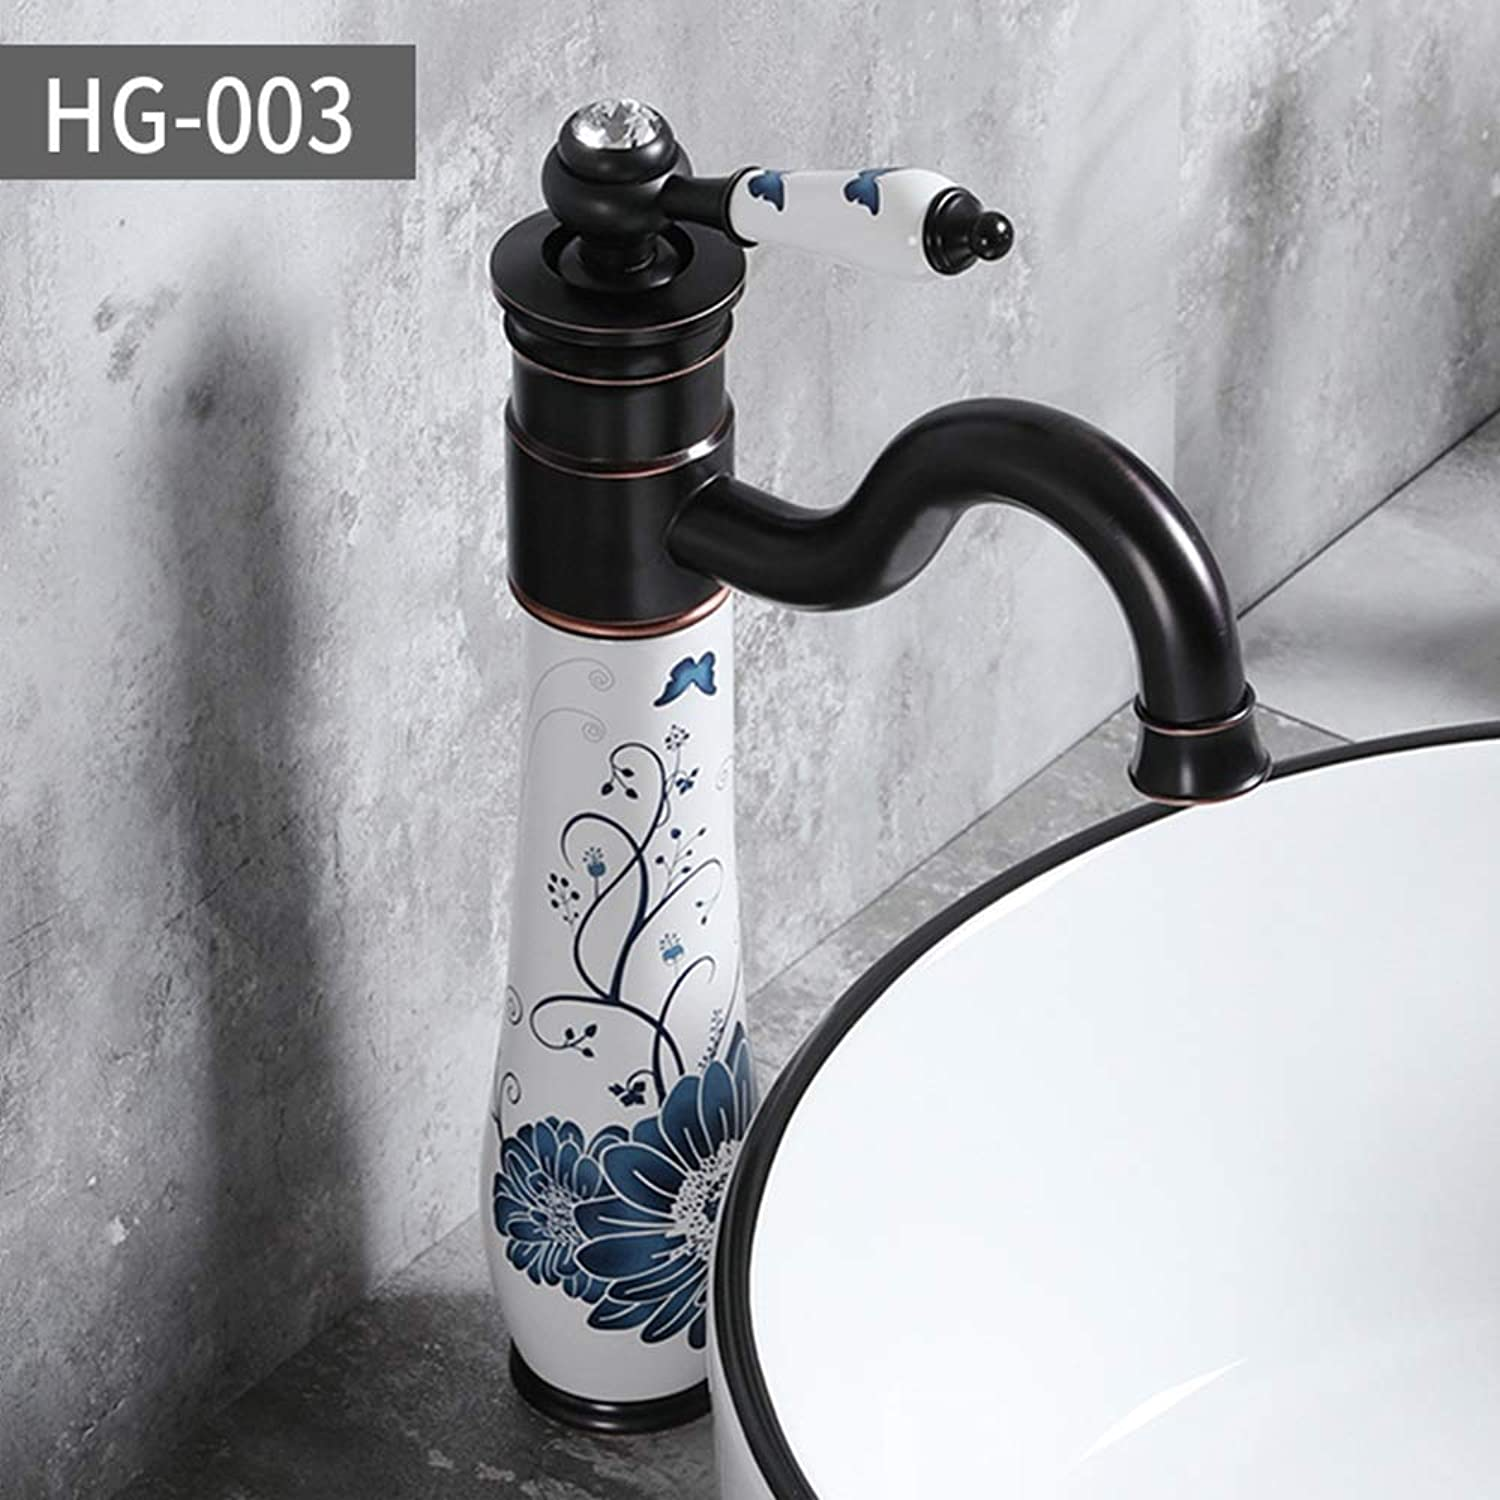 color Ceramic Art Faucet Personality Creative Copper ORB Plating Art Cold Water Hot Water Optional Simple Fashion Faucet Bathroom Sink Taps (color   HG-003)